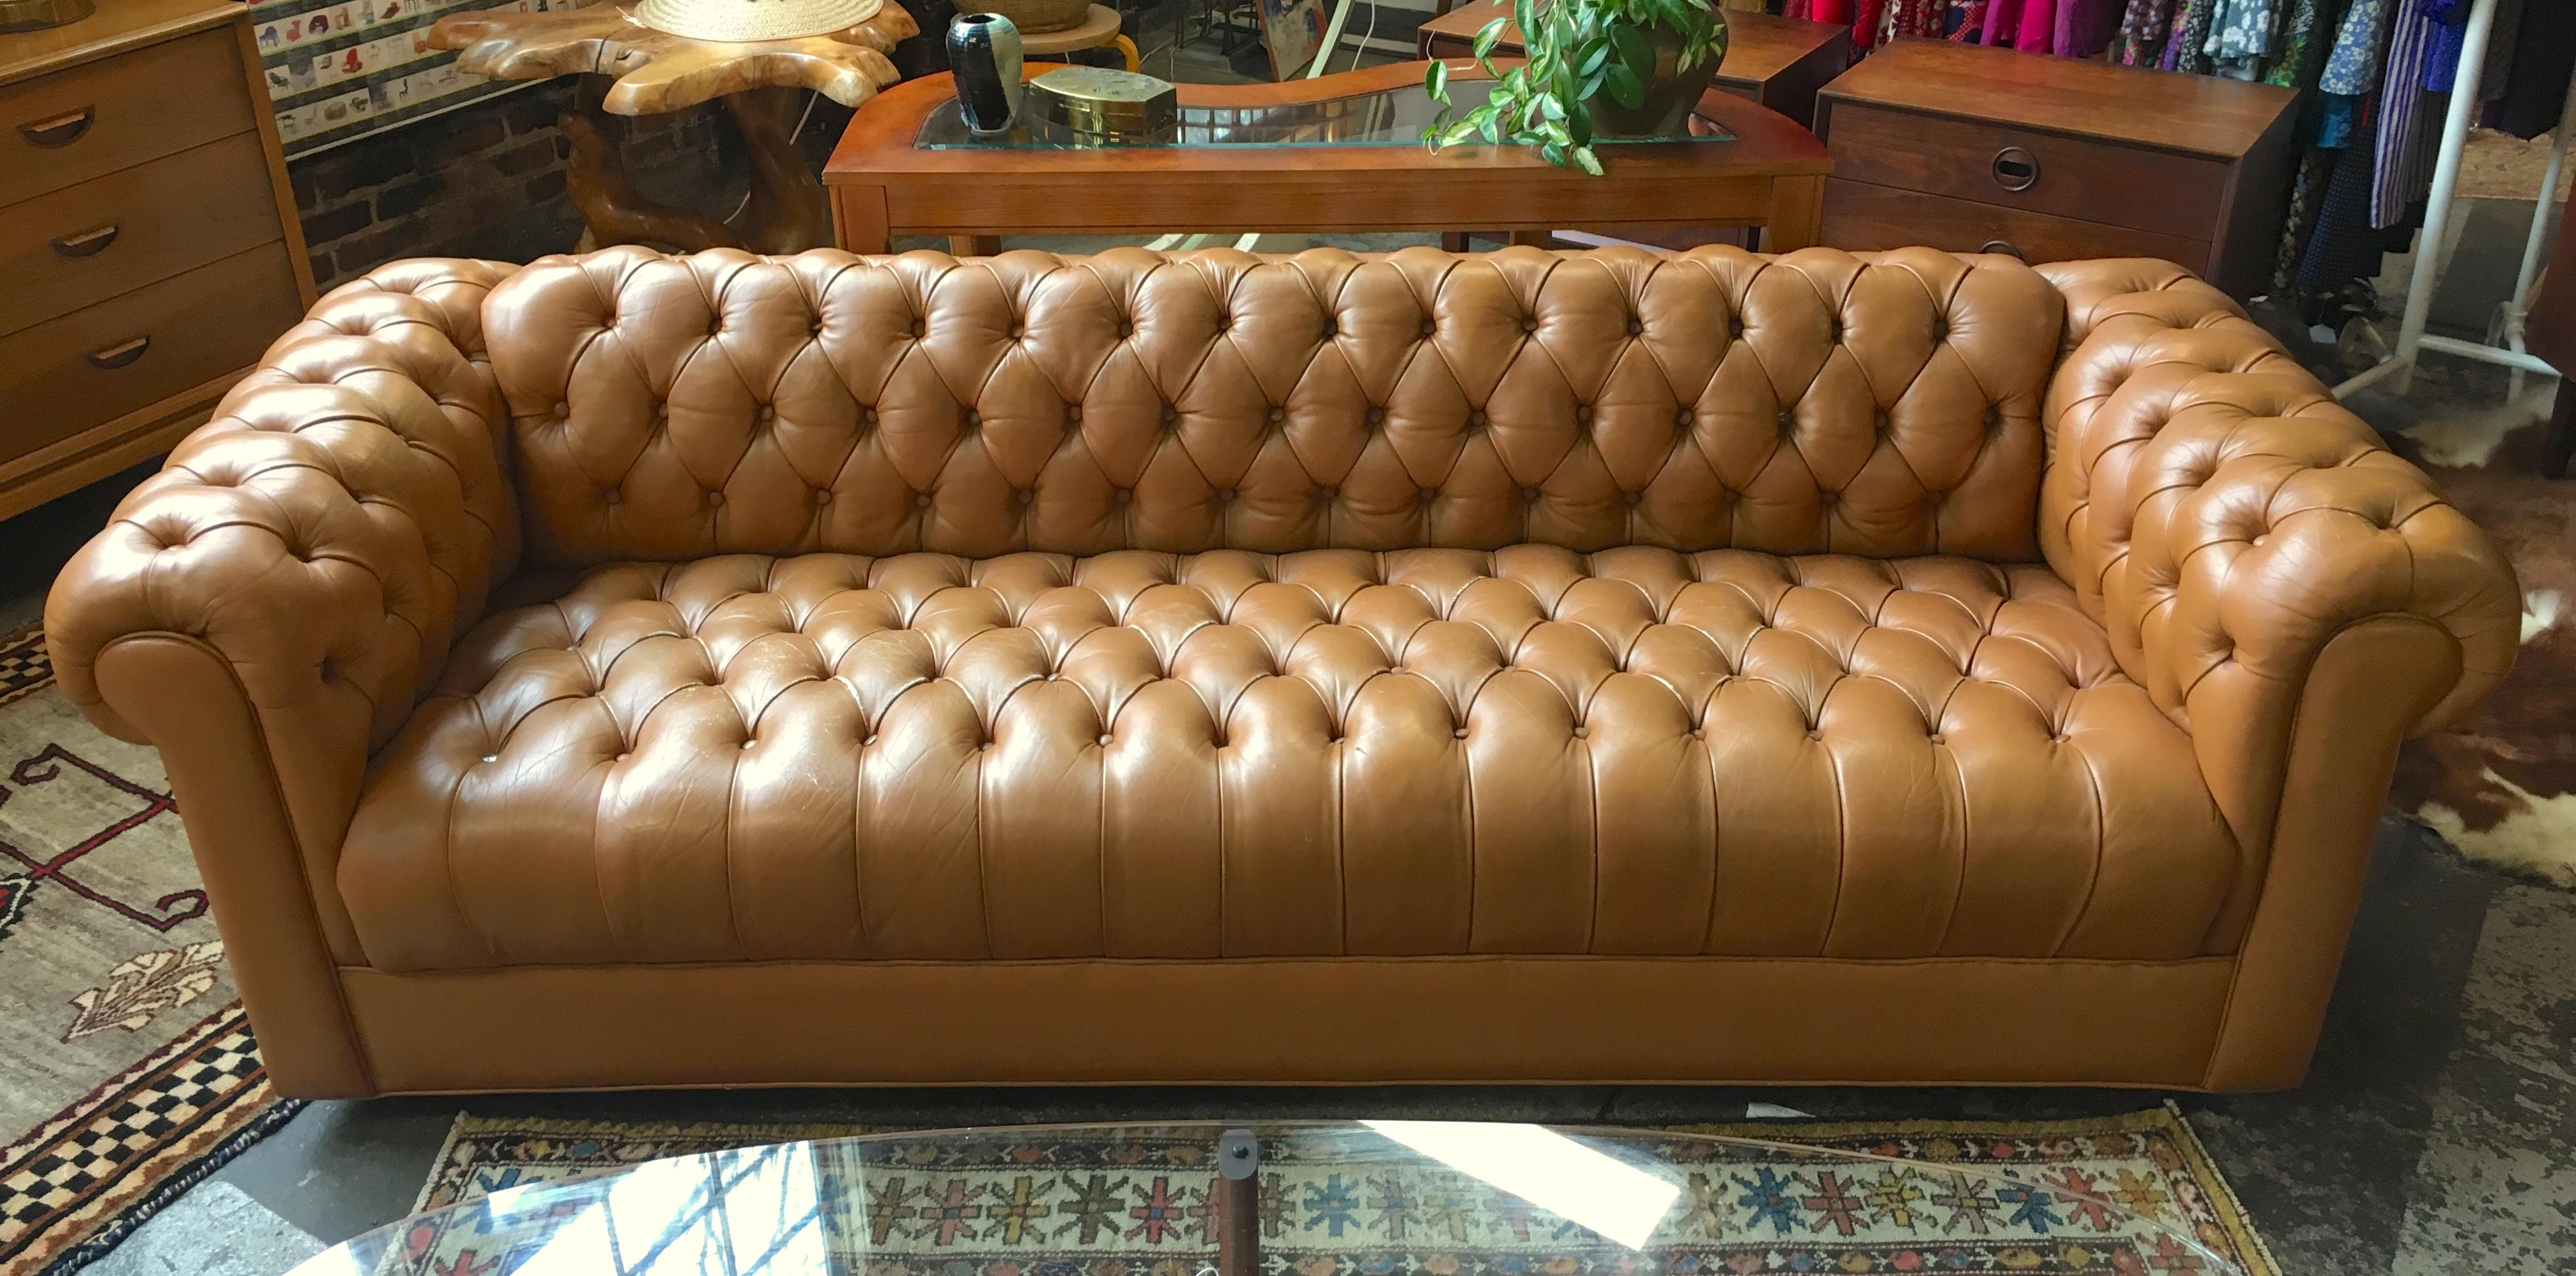 Awesome Cognac Leather Tufted Chesterfield Sofa   Image 6 Of 6